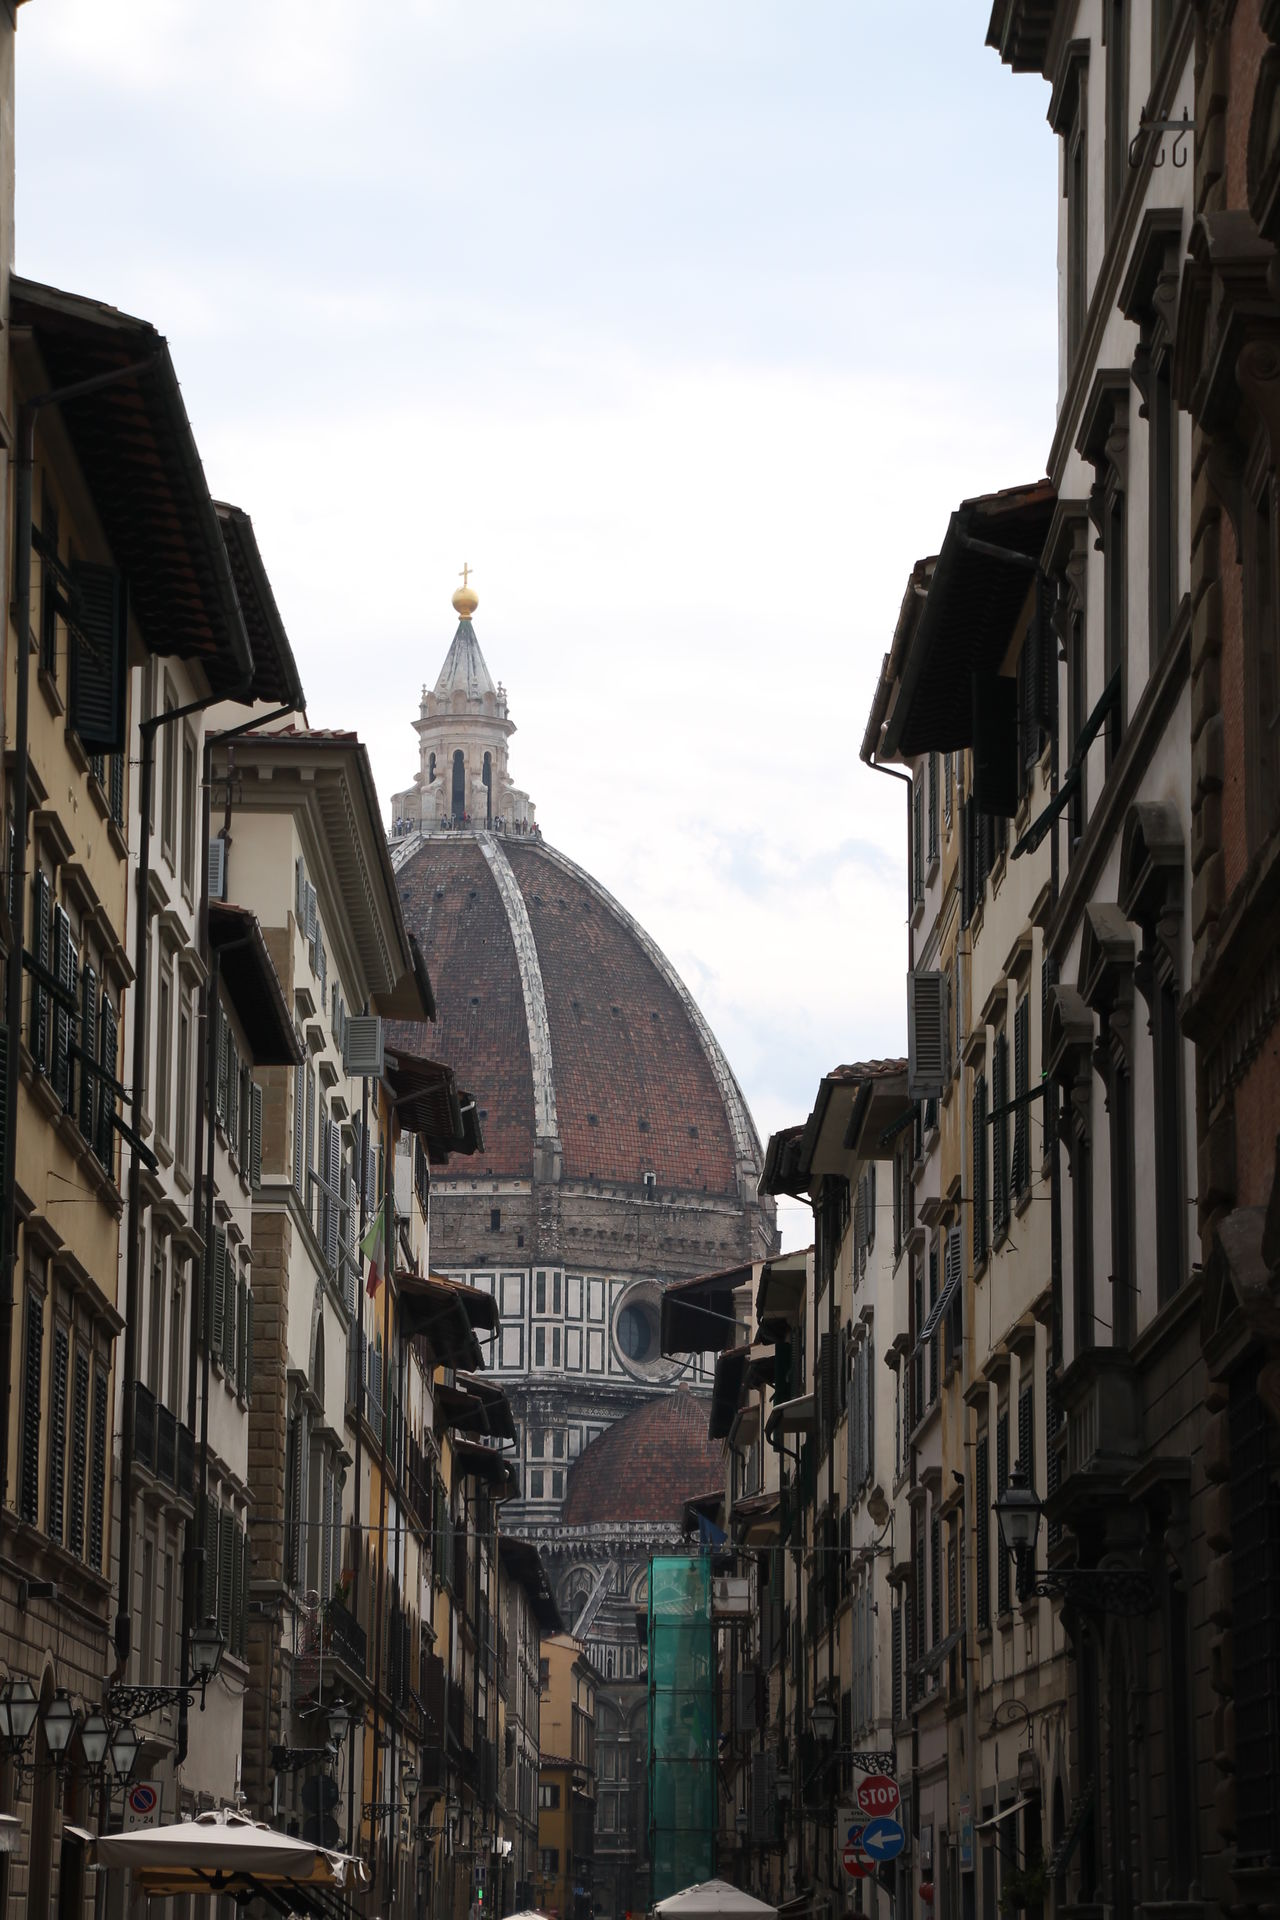 City Architecture Travel Destinations Travel Built Structure Dome No People Firenze Duomo Di Firenze Duomo Italy Italya Santa Maria Del Fiore Poster Postcard Christian Church Cross Gold Golden Cross